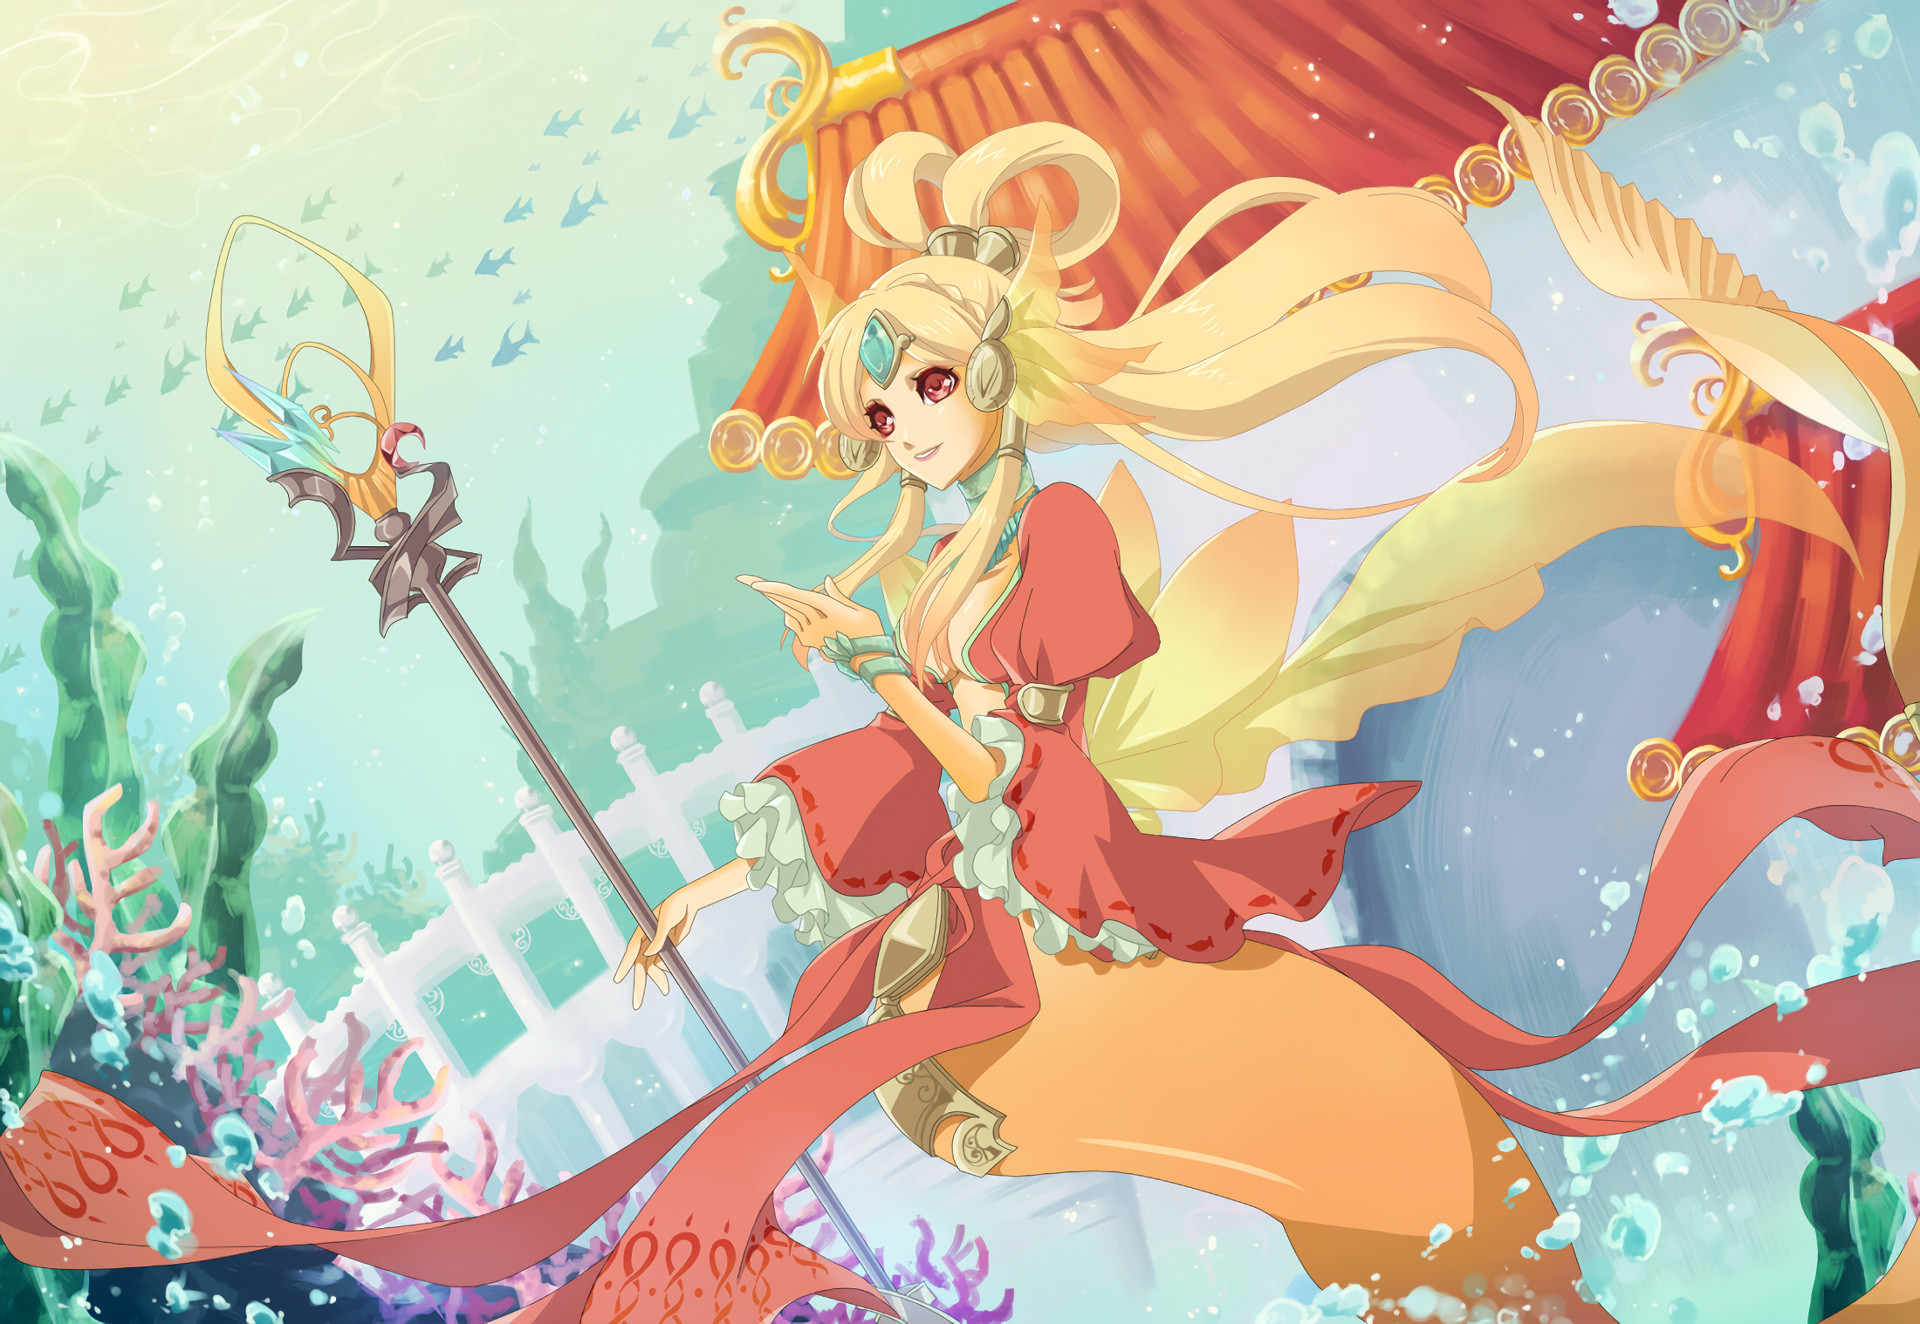 1920x1324 Nami (Skin Concept) by 柿P HD Wallpaper Fan Artwork League of Legends lol